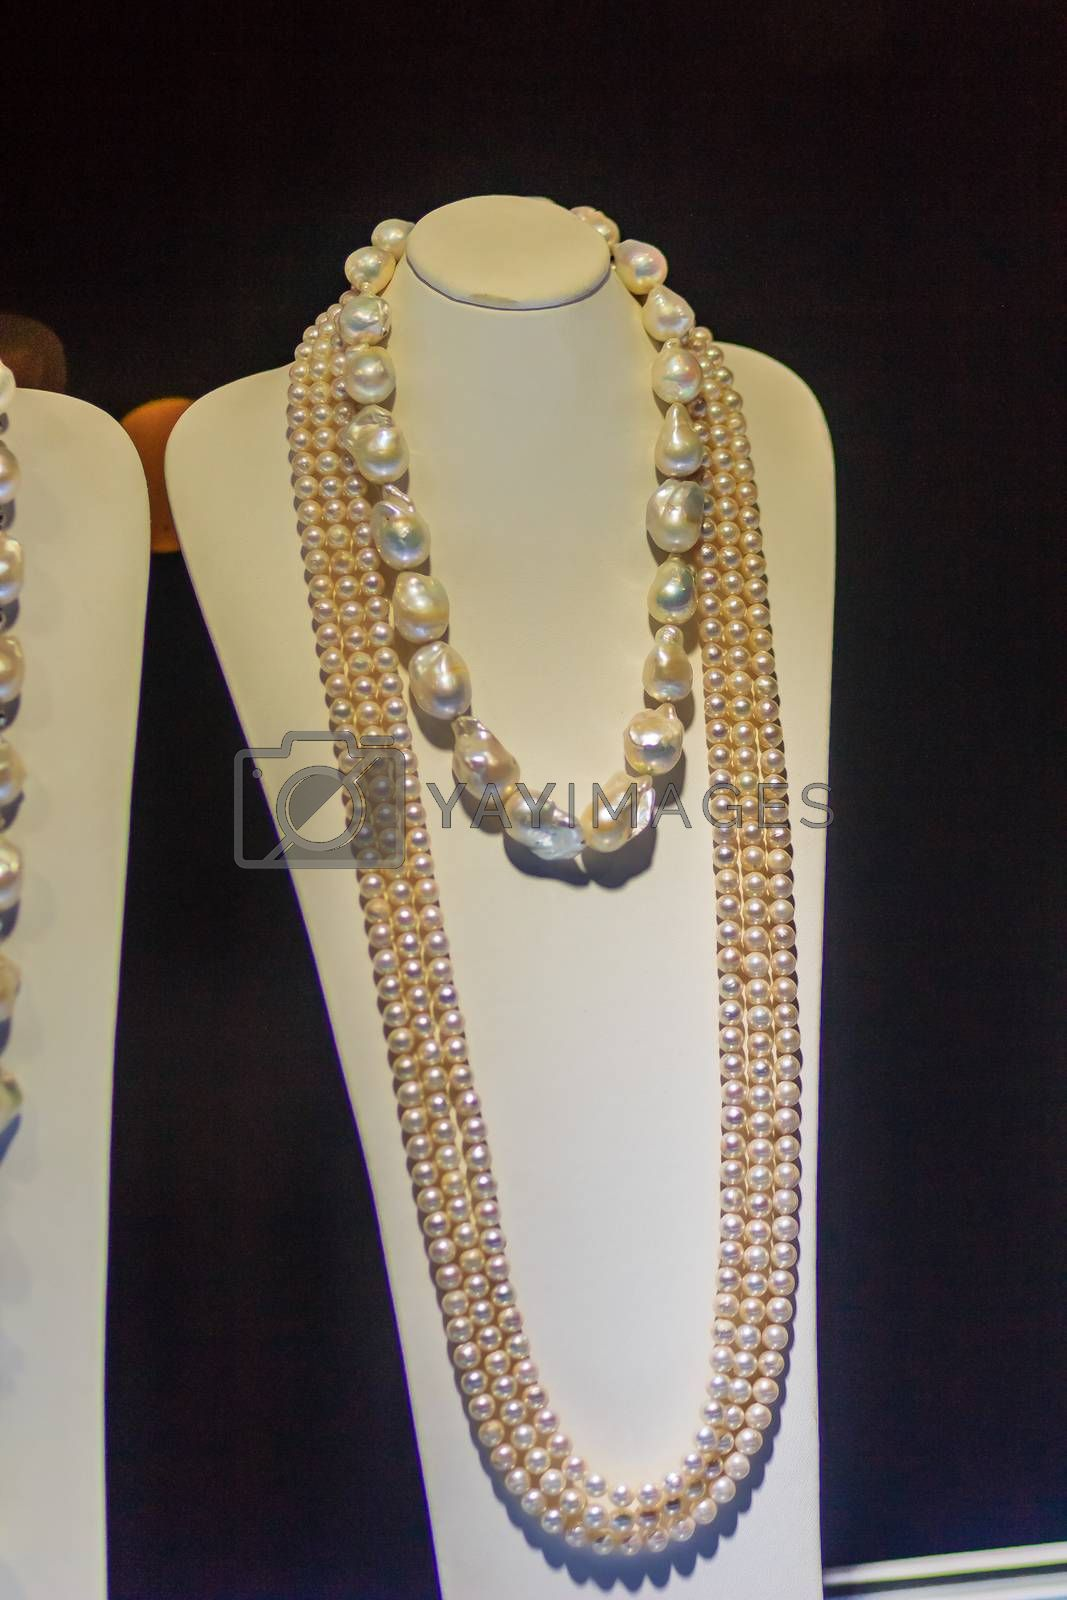 Beautiful long pearl necklaces are displayed at a jewelry shop. Poor light with noise grain shot